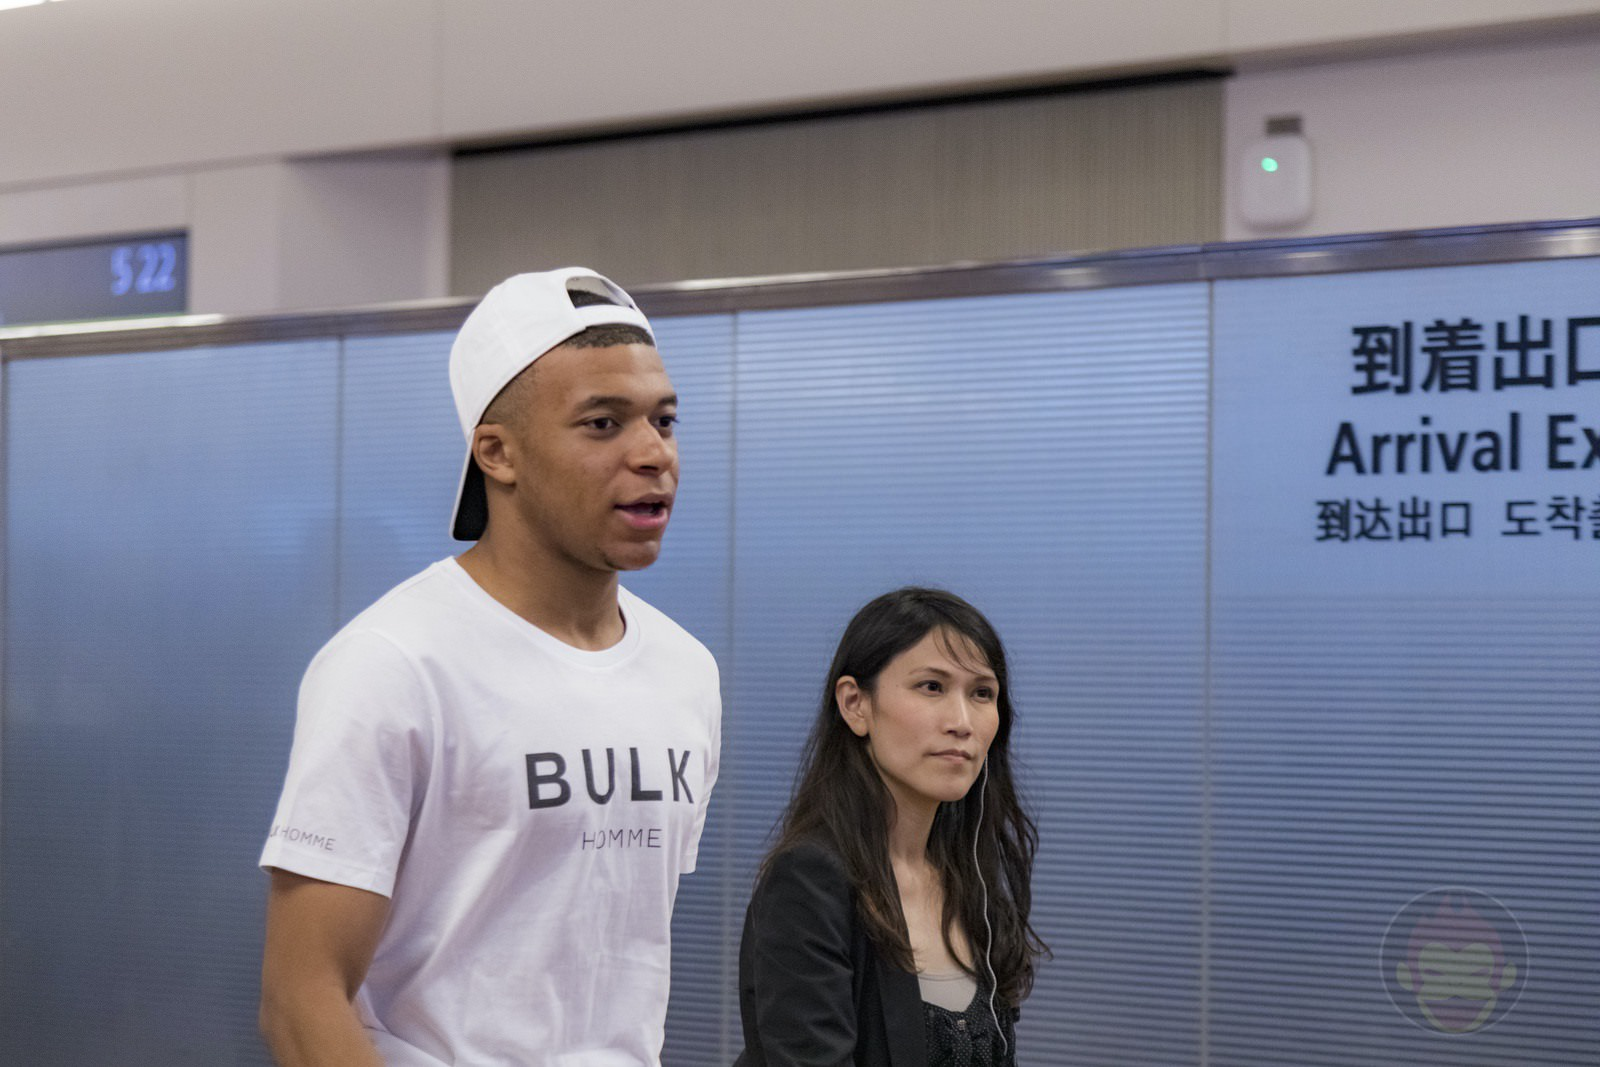 Kylian Mbappé Comes to Japan 10